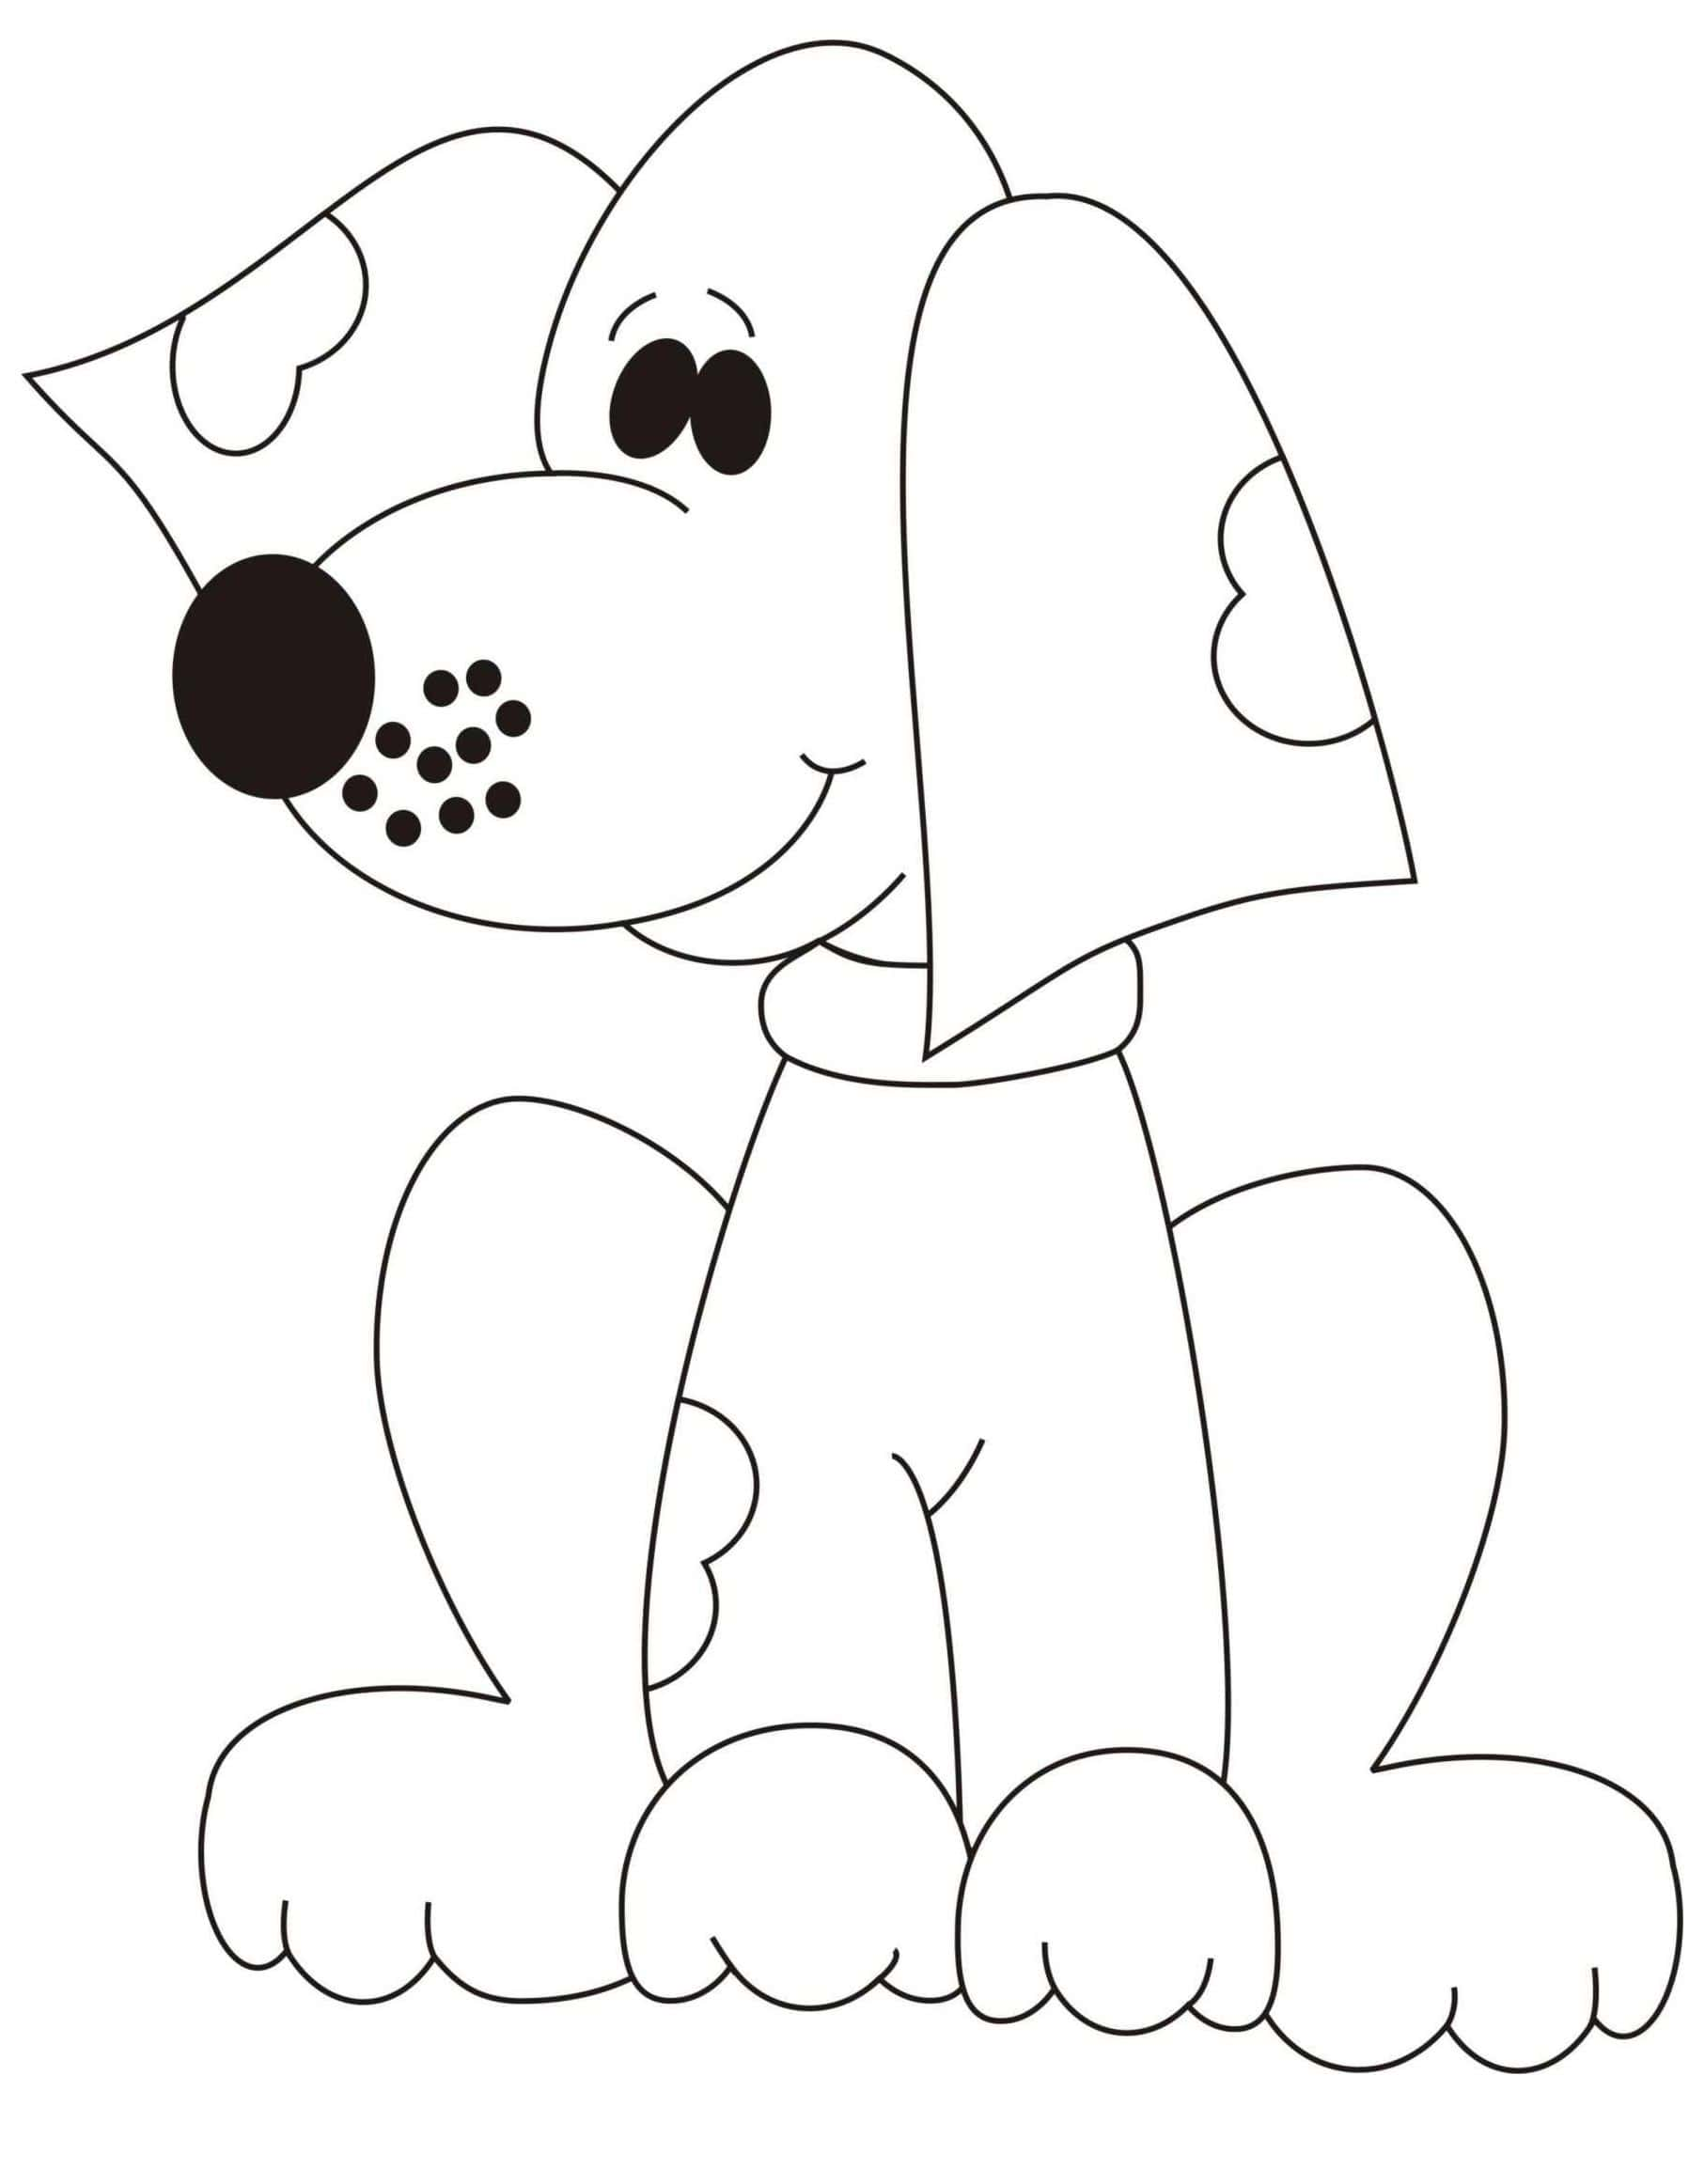 Dog coloring pages | 2324x1814